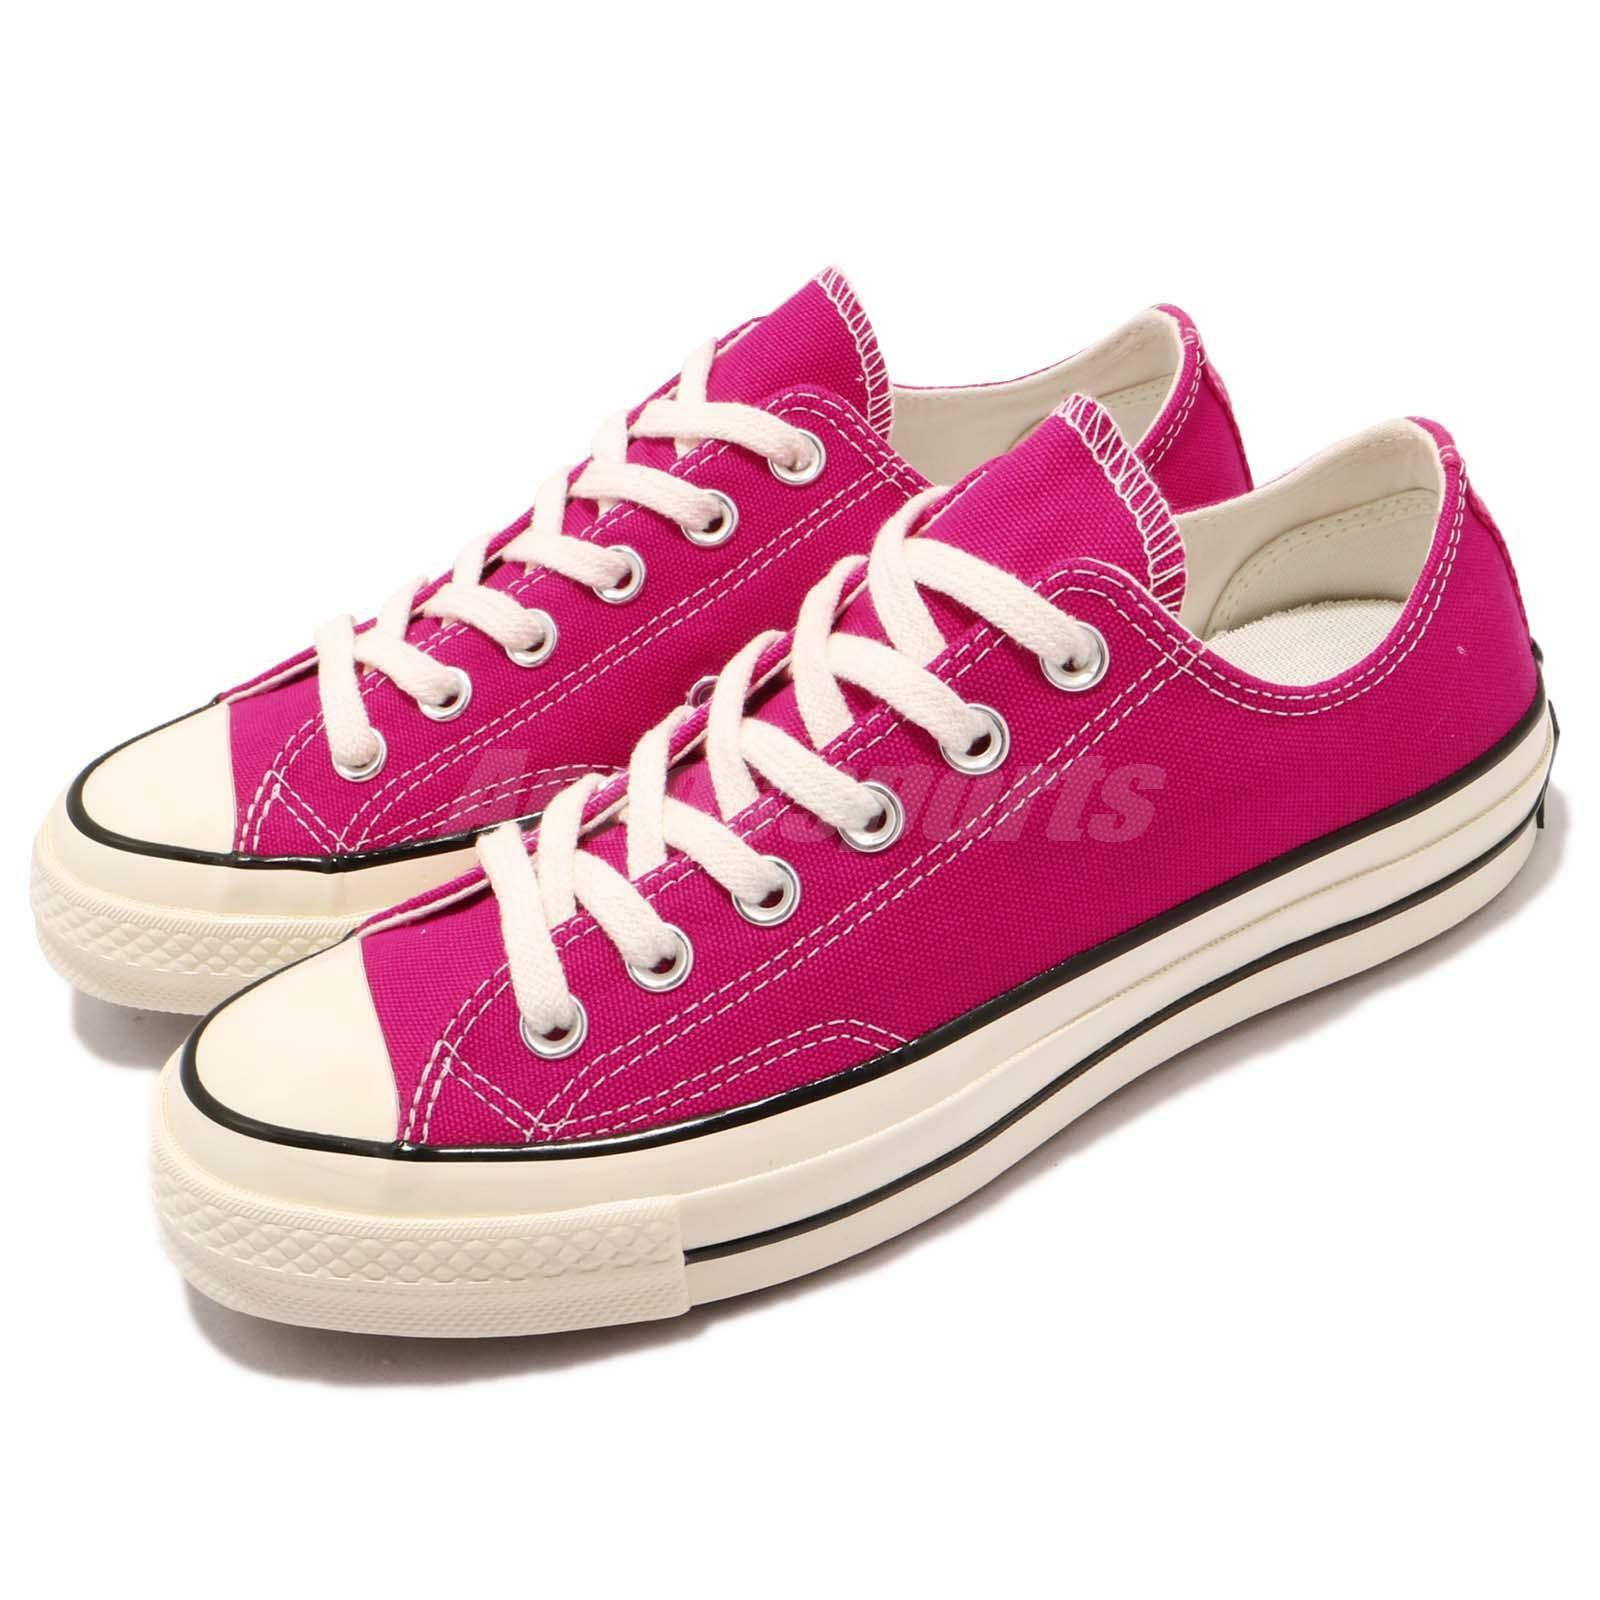 Converse First Stbague Chuck Taylor Tous Star 70 1970 s OX Rose Hommes Femmes 161445 C